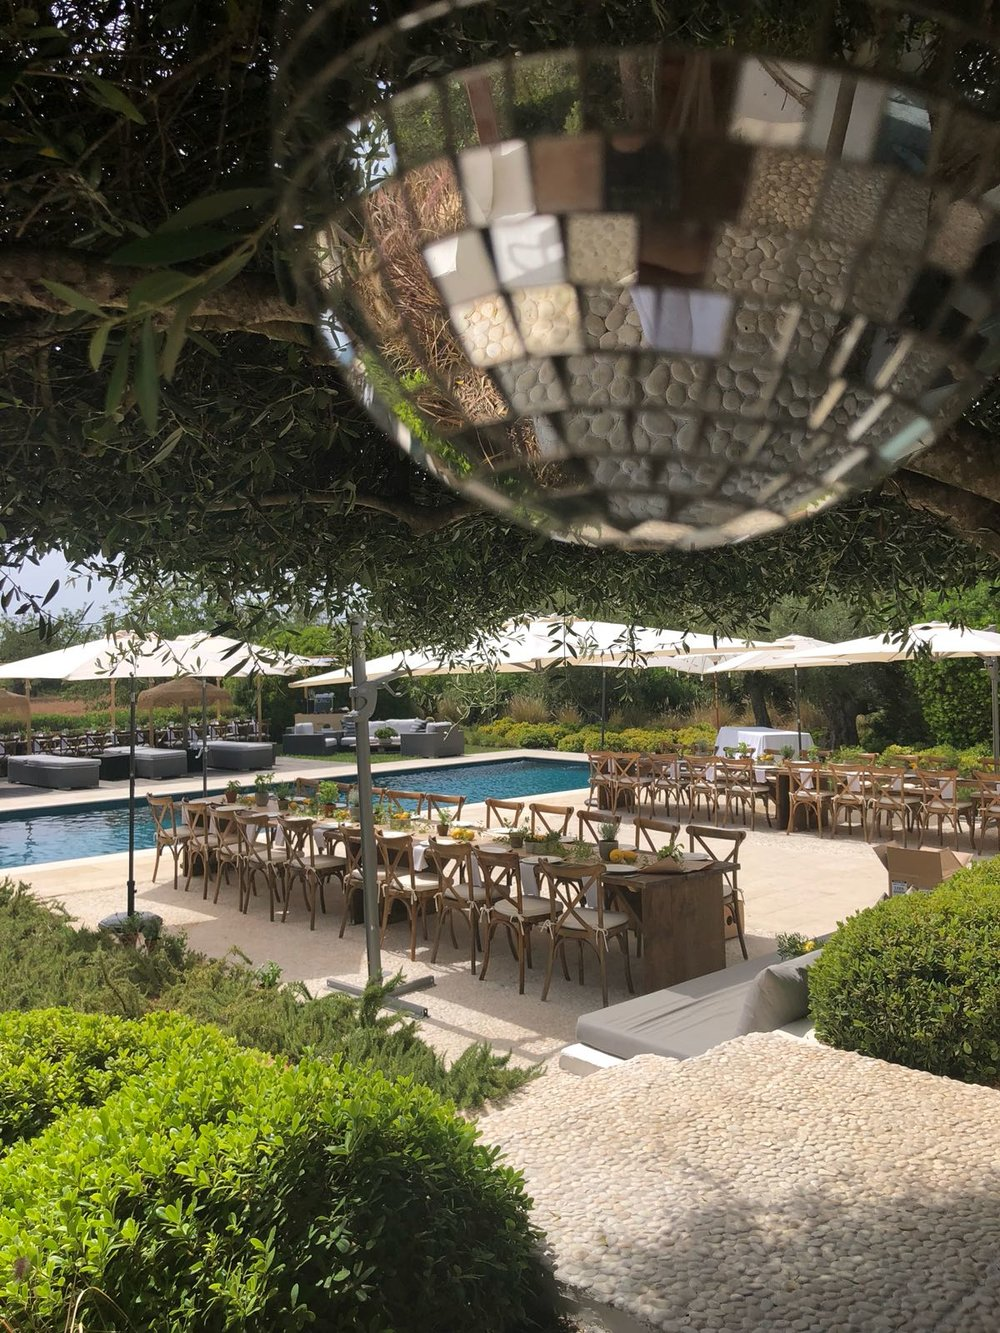 ibiza party, event, obi and the island, pool party